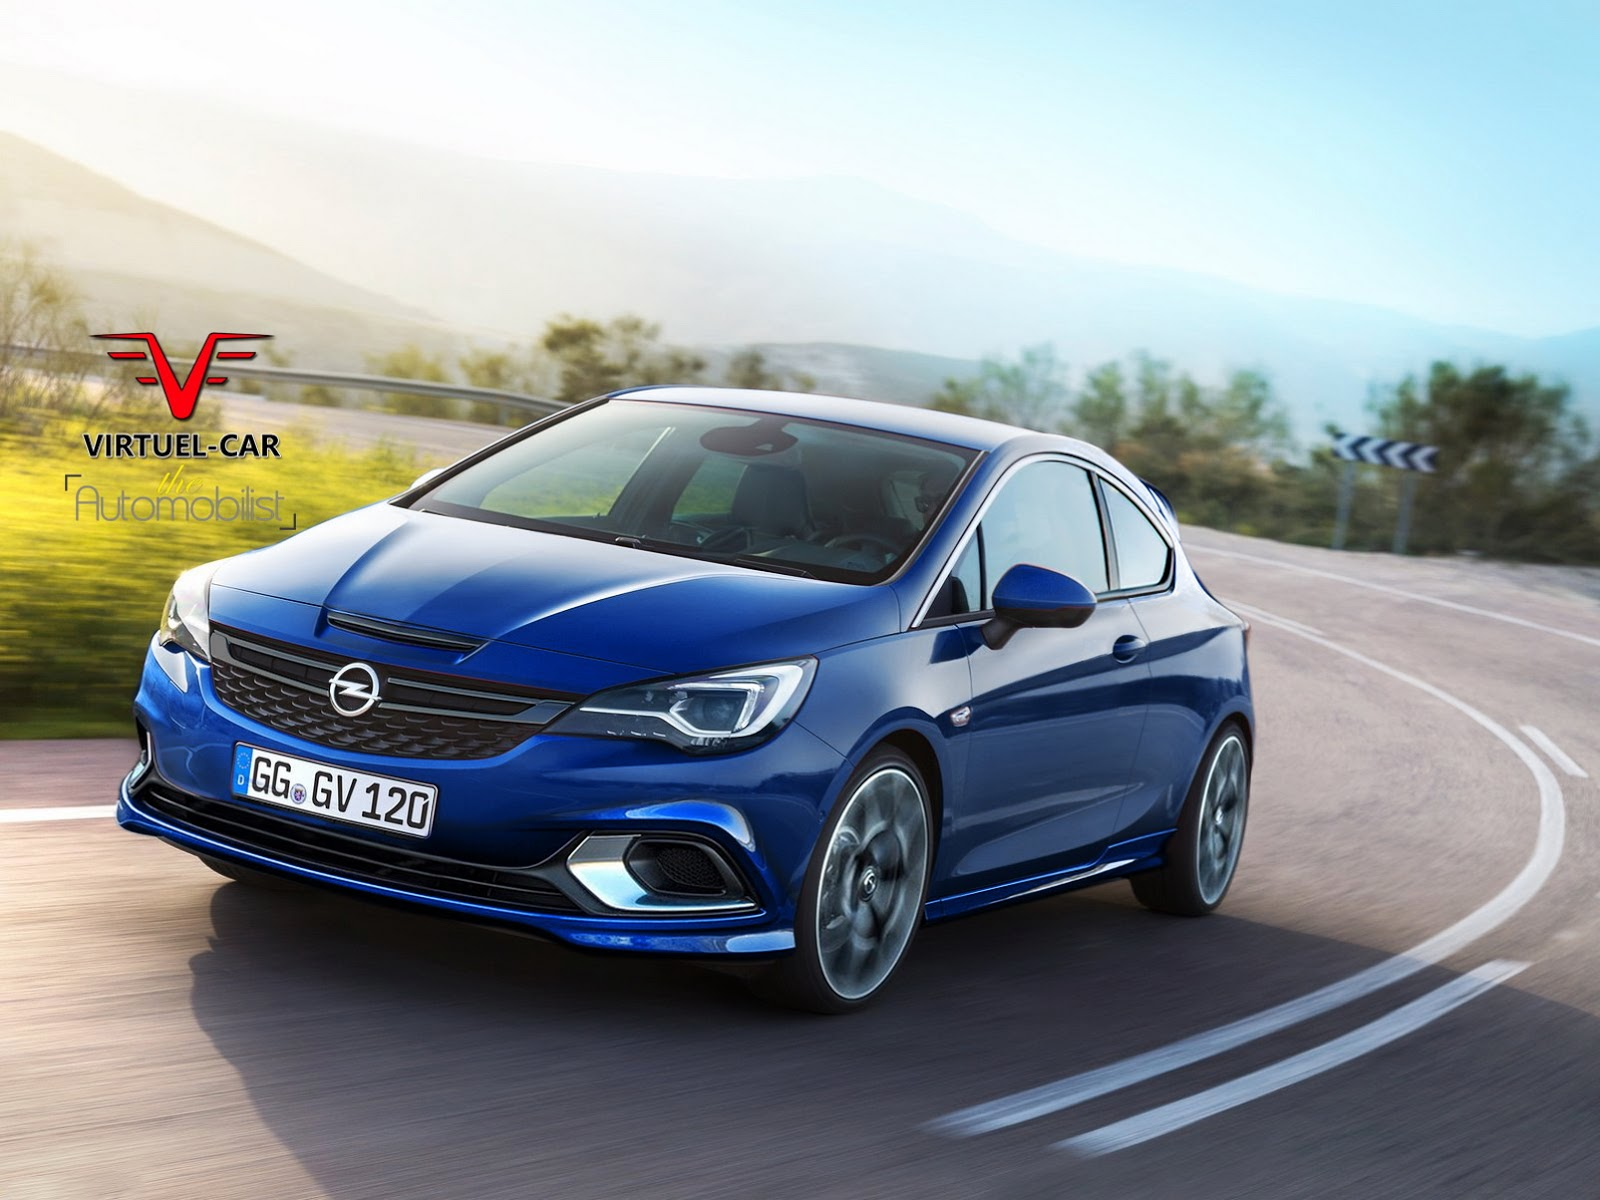 astra opc opel vauxhall corsa turbo wallpapers rendered virtuel tuned neue der liter could autoevolution components hd del la opelastra